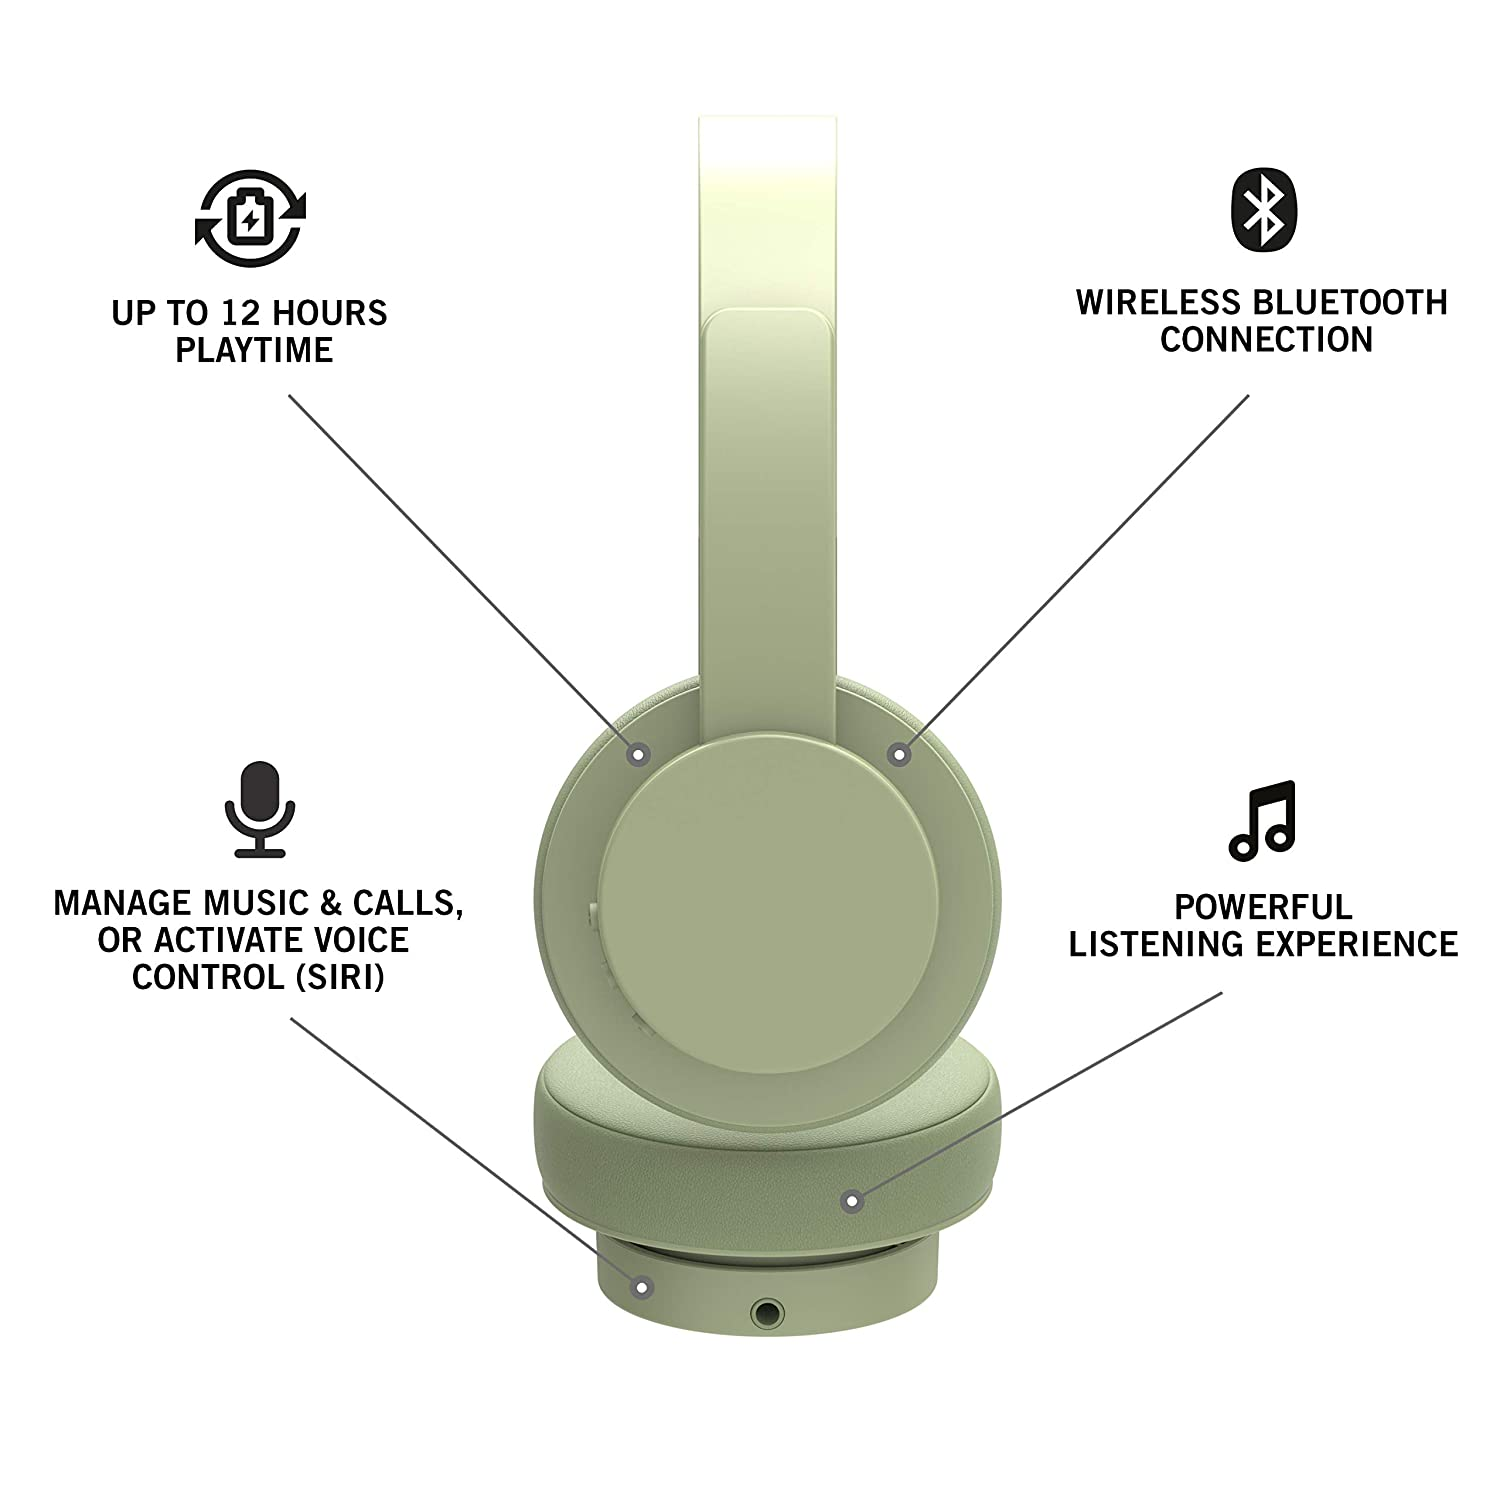 Amazon.com: Urbanista Detroit Bluetooth On Ear Headphones [ Fashion Conscious ], Up to 12 Hours Play Time, Call-Handling with Microphone - Spring Green: ...